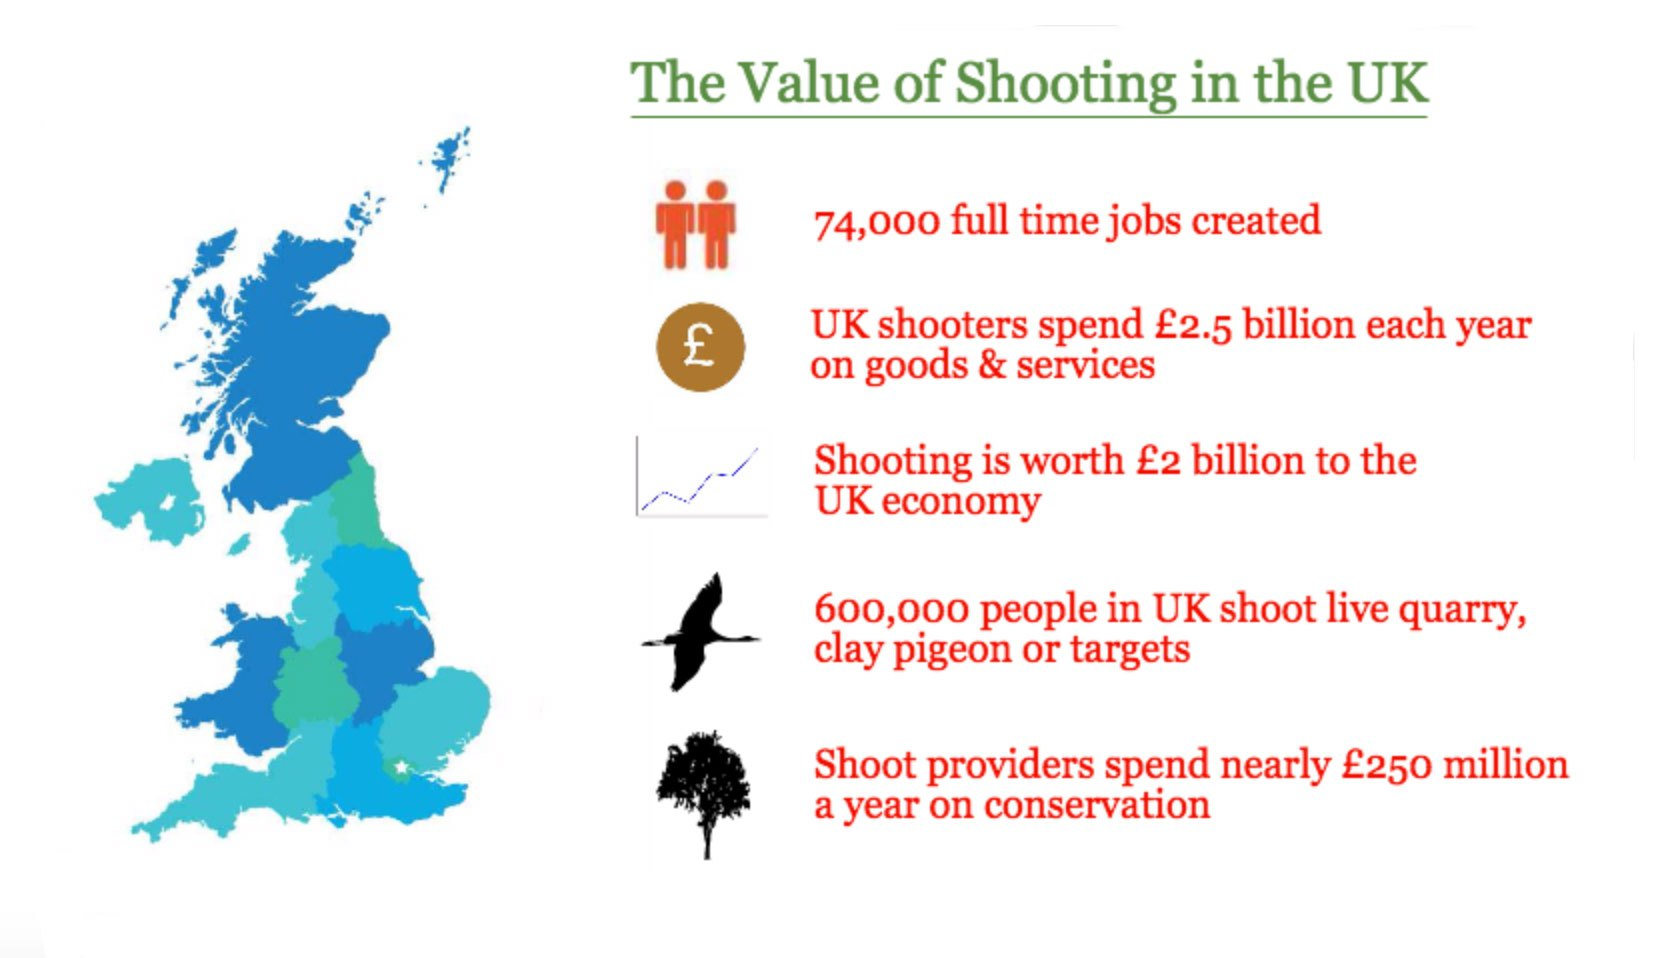 Value of Game Shooting in the UK